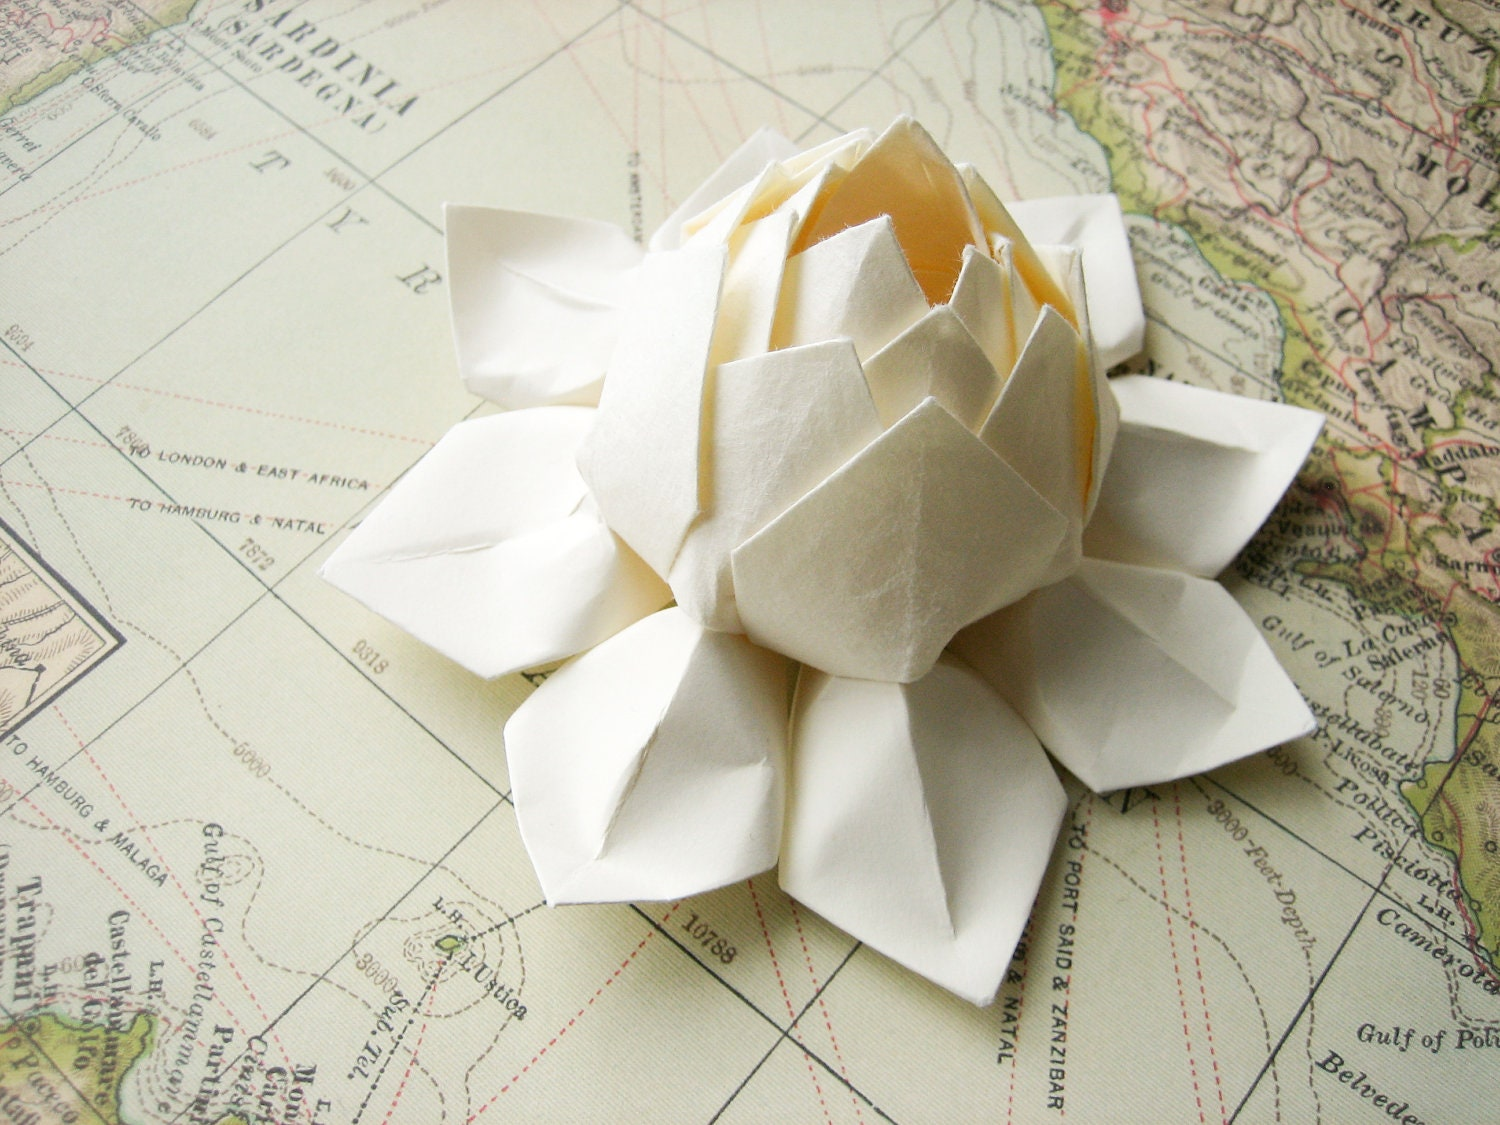 Lotus Flower Handmade Origami Paper Flower All By Fishandlotus